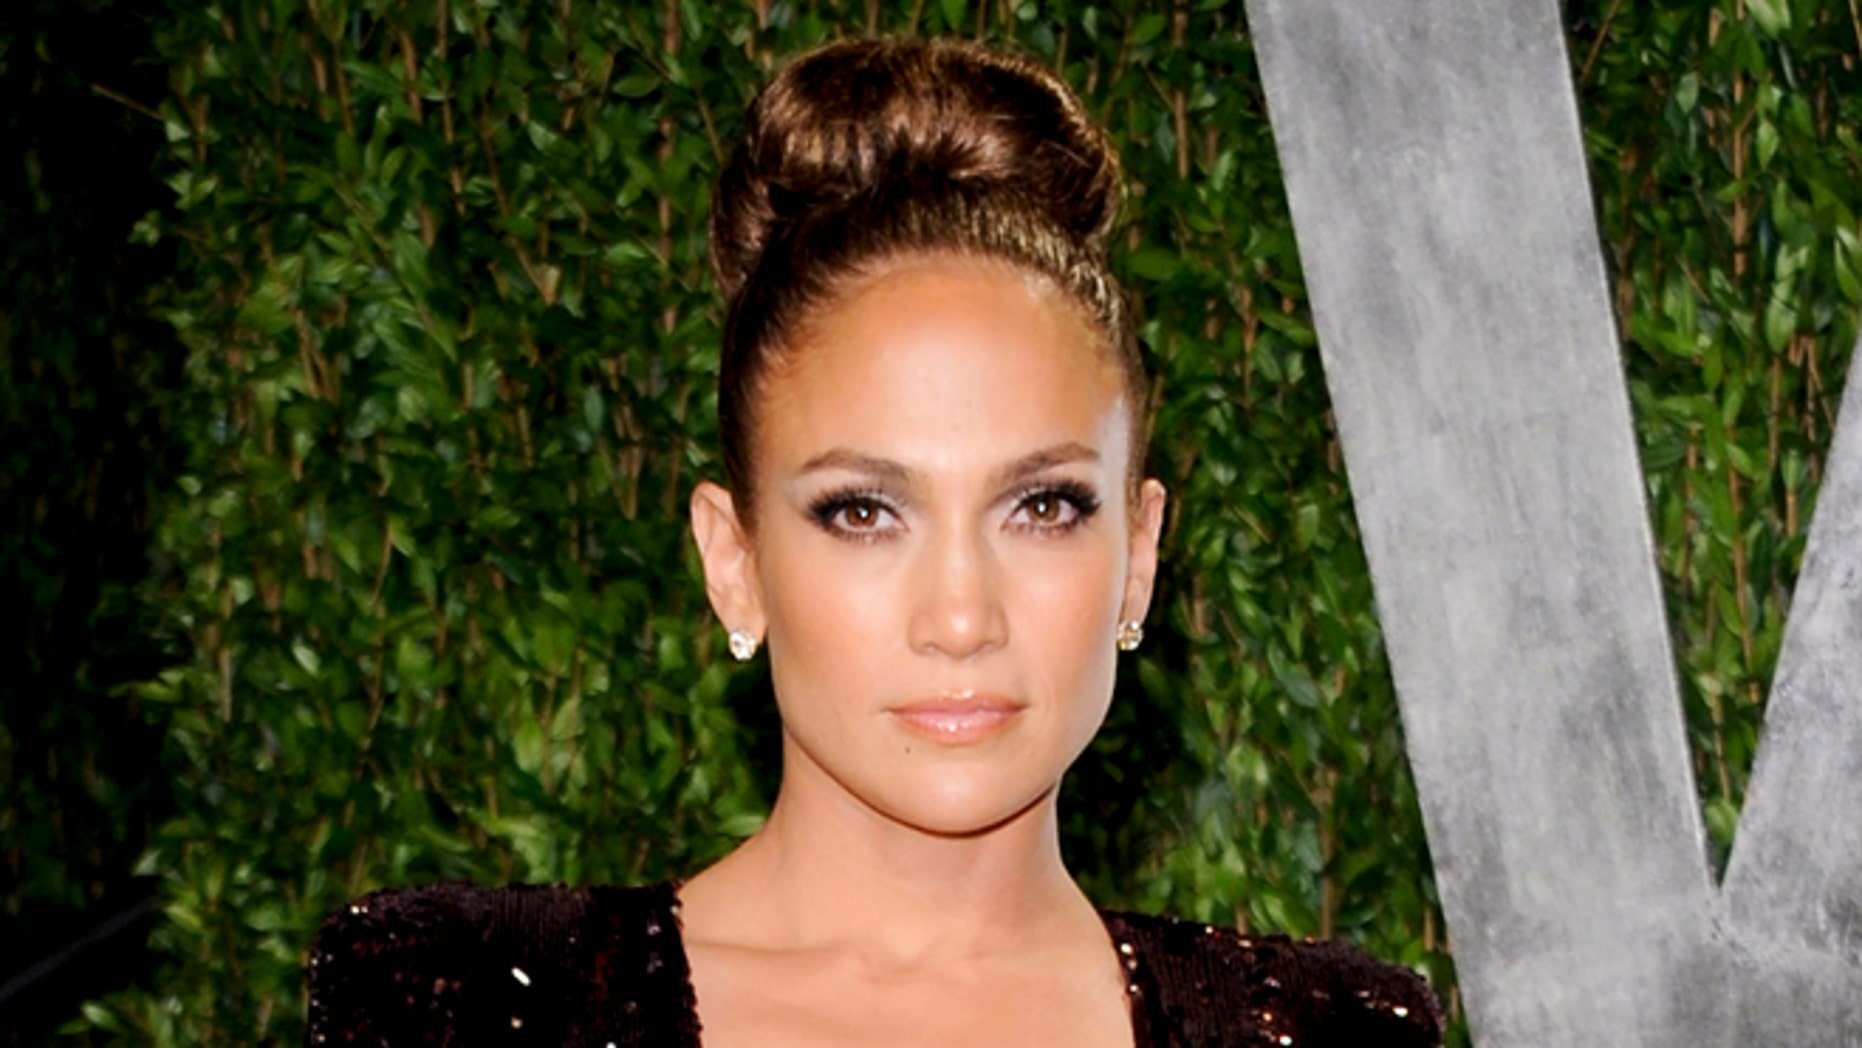 """FILE - In this Feb. 26, 2012 file photo, actress and singer Jennifer Lopez arrives at the Vanity Fair Oscar party in West Hollywood, Calif.  ABC Family announced Thursday, Aug. 23, 2012 that it has greenlighted a pilot titled """"The Fosters,"""" from Jennifer Lopez's production company about a diverse family headed by a lesbian couple. (AP Photo/Evan Agostini, file)"""